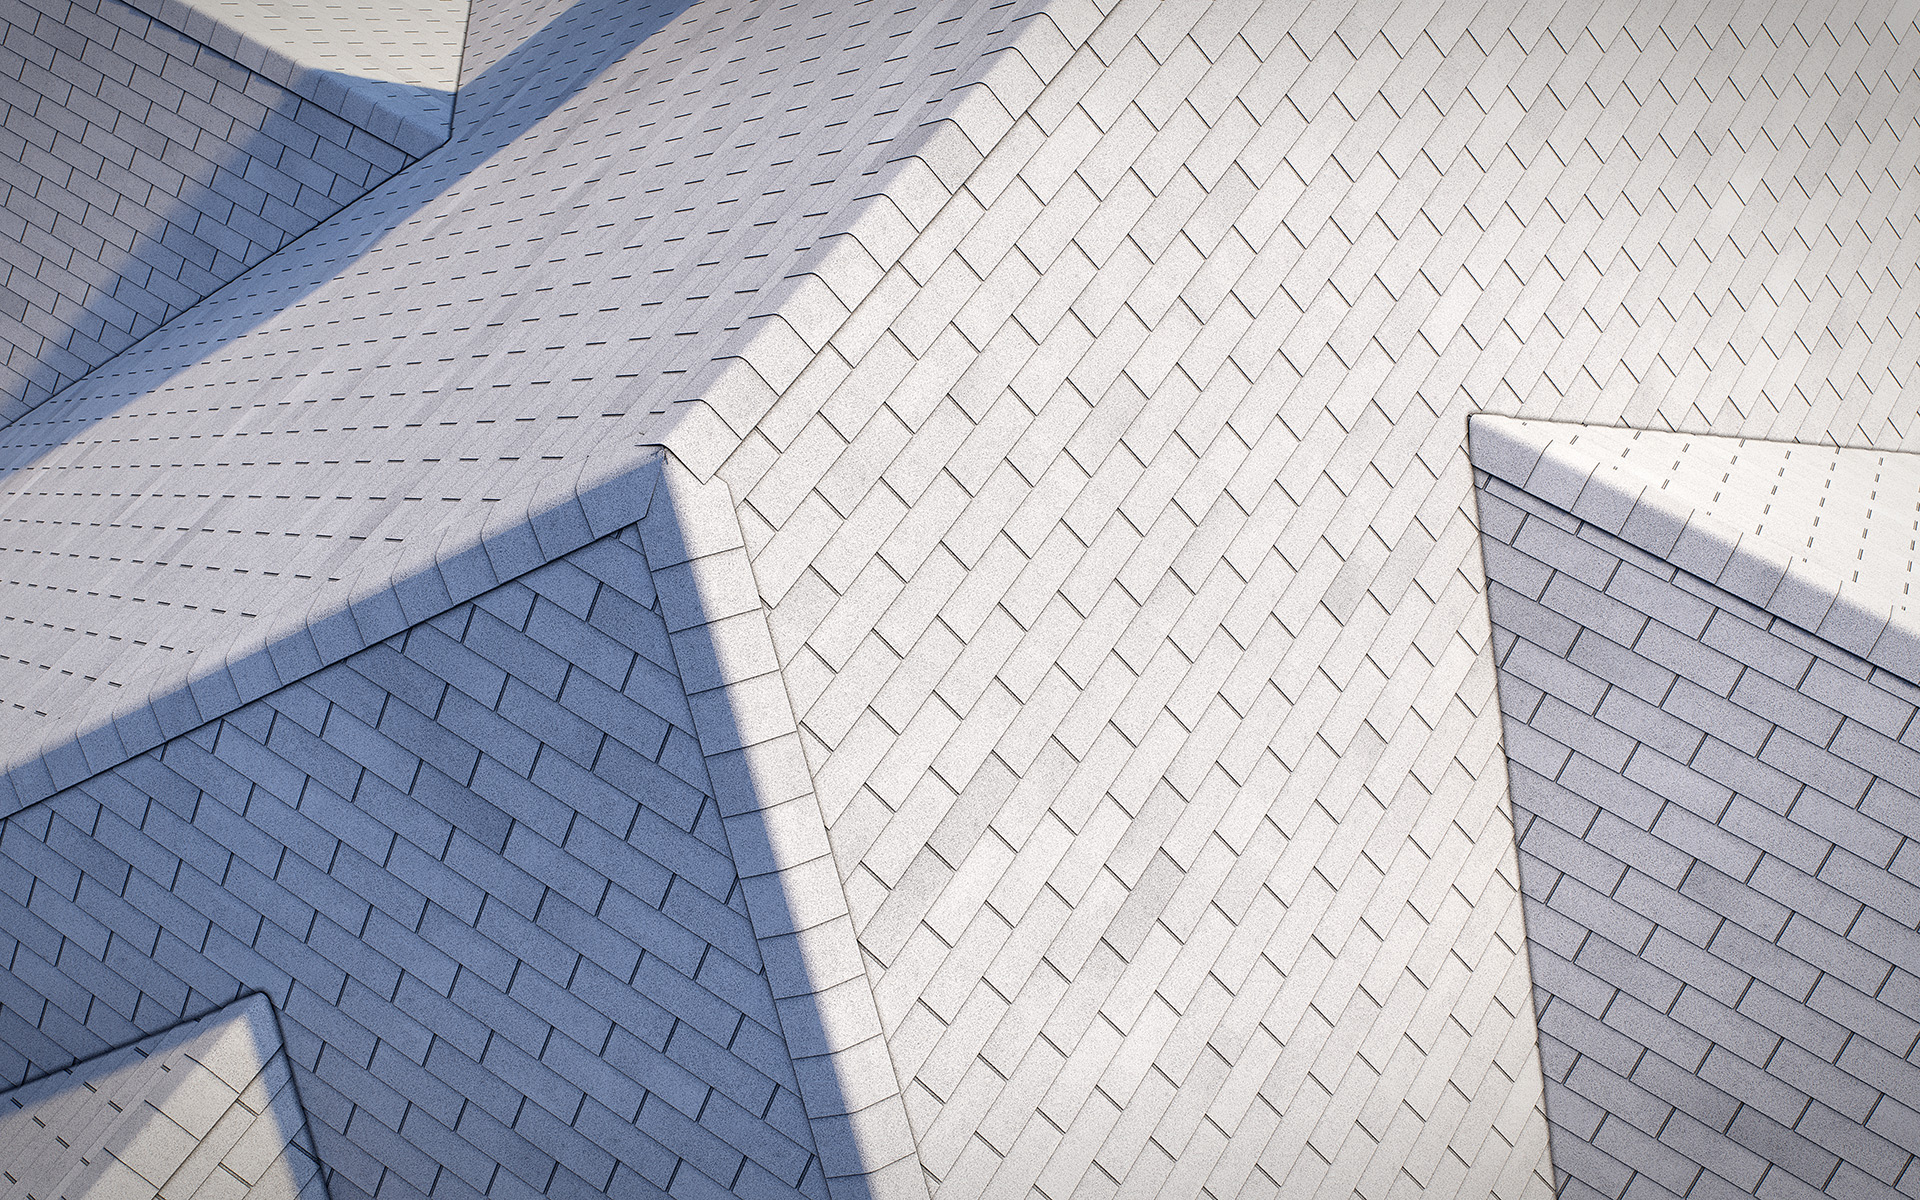 3-tab asphalt roof shingles white2 color 3D model preset for 3dsmax and RailClone. Rendered with vray, made for arch-viz.